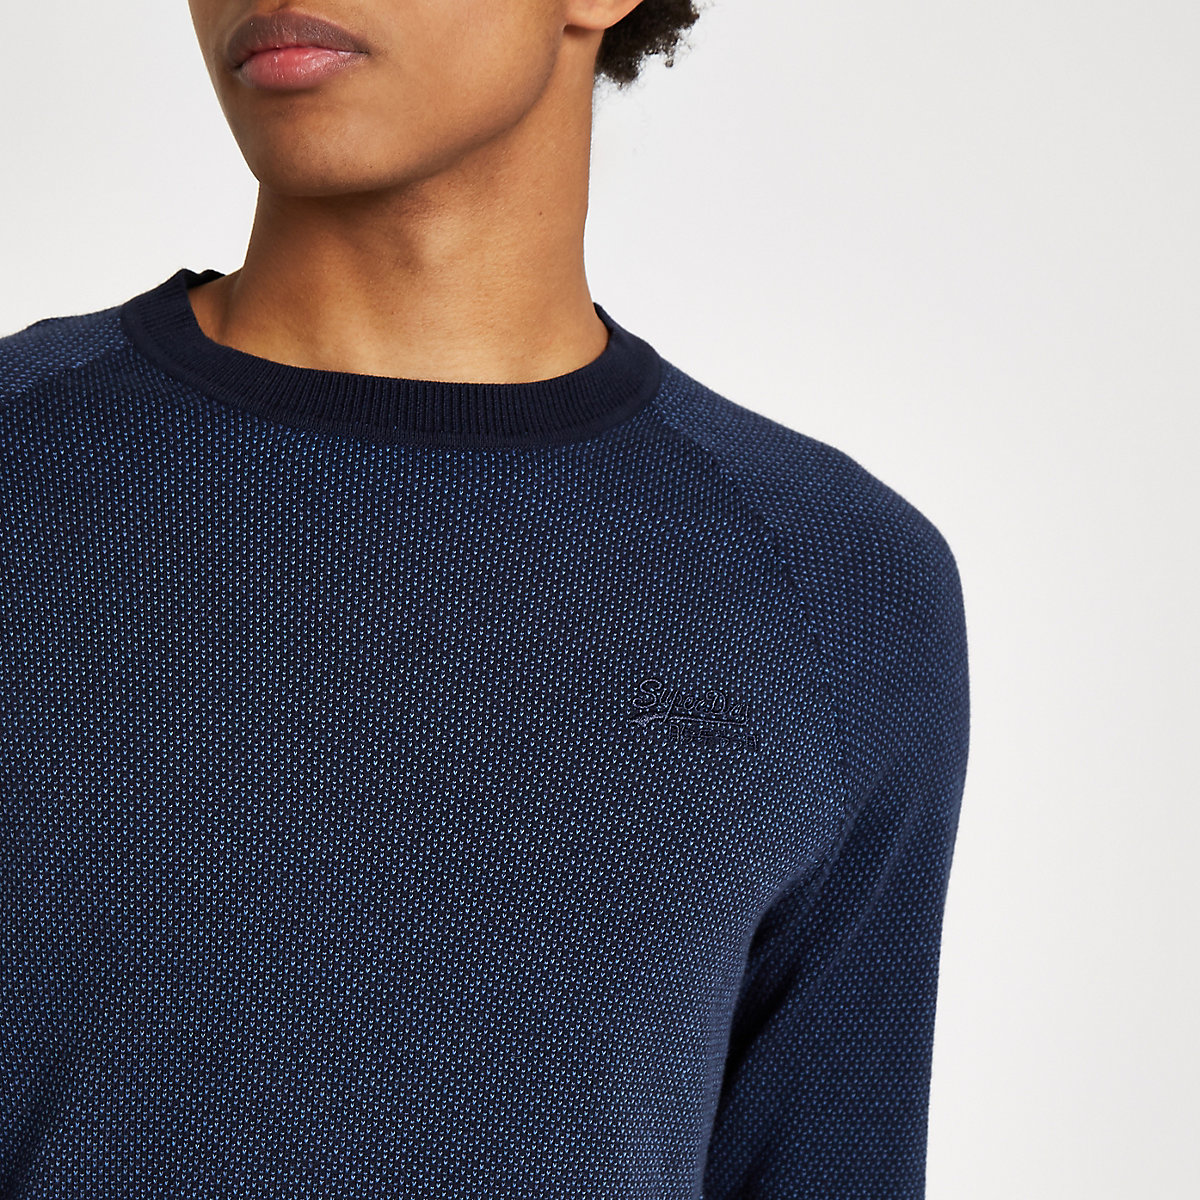 Superdry navy logo embroidery sweater